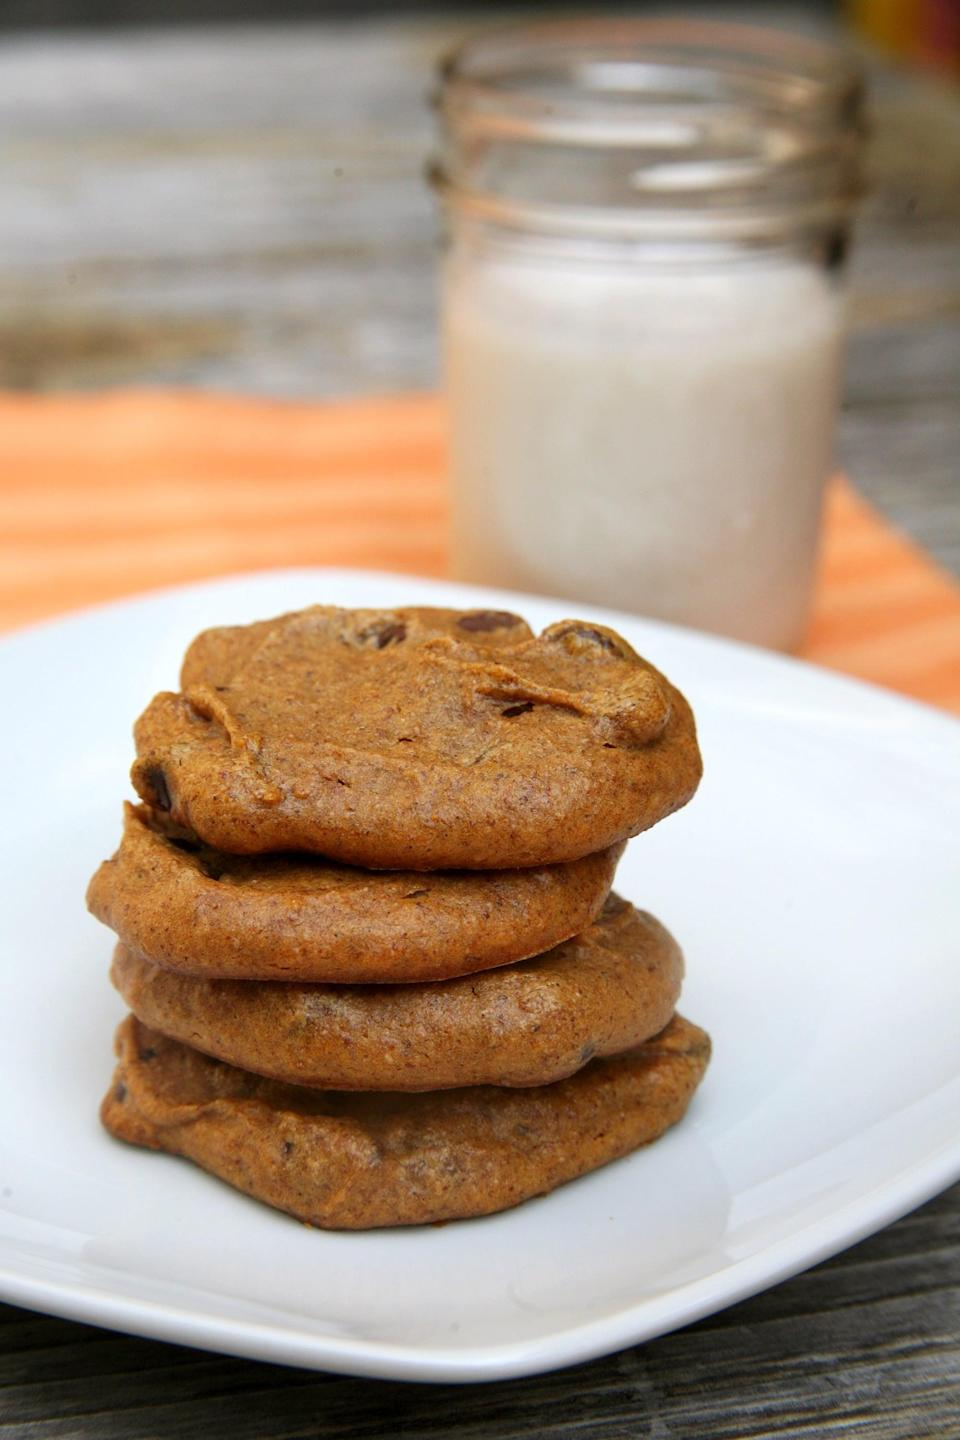 """<p>Soft, chewy, and only 86 calories per serving, these pumpkin chocolate chip cookies are vegan and grain-free. Bonus: since they contain no eggs, you can lick the bowl clean!</p> <p><b>Get the recipe</b>: <a href=""""https://www.popsugar.com/fitness/Vegan-Gluten-Free-Pumpkin-Cookies-27884350"""" class=""""link rapid-noclick-resp"""" rel=""""nofollow noopener"""" target=""""_blank"""" data-ylk=""""slk:vegan, grain-free pumpkin chocolate chip cookies"""">vegan, grain-free pumpkin chocolate chip cookies</a></p>"""